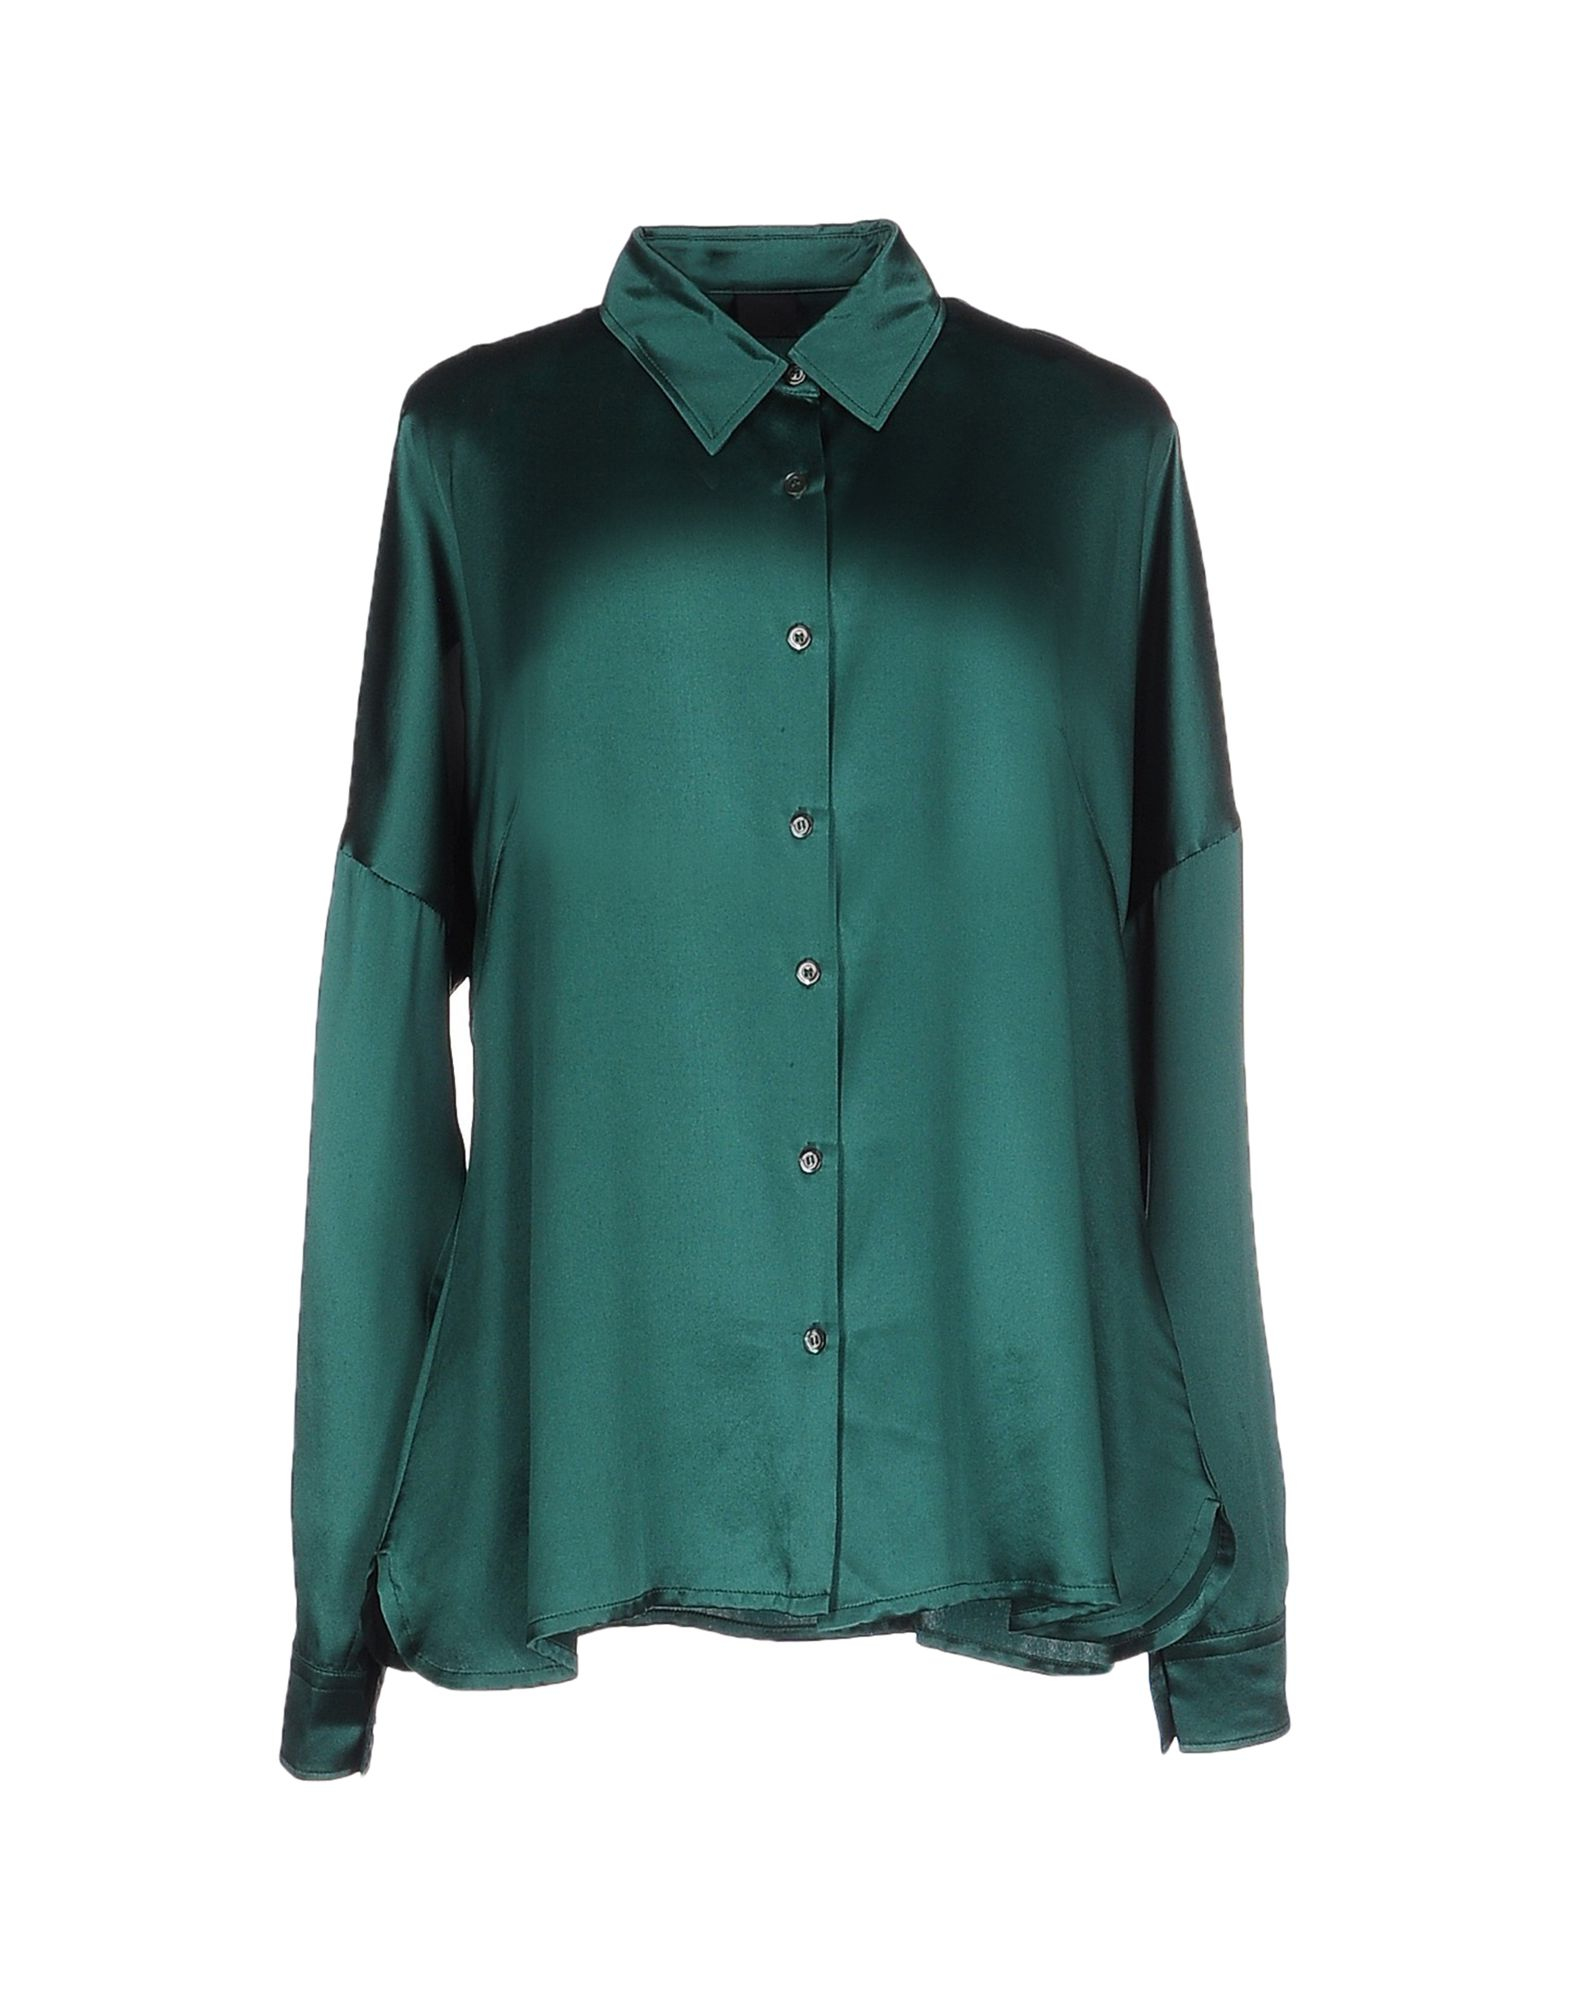 Aspesi shirt in green lyst Emerald green mens dress shirt